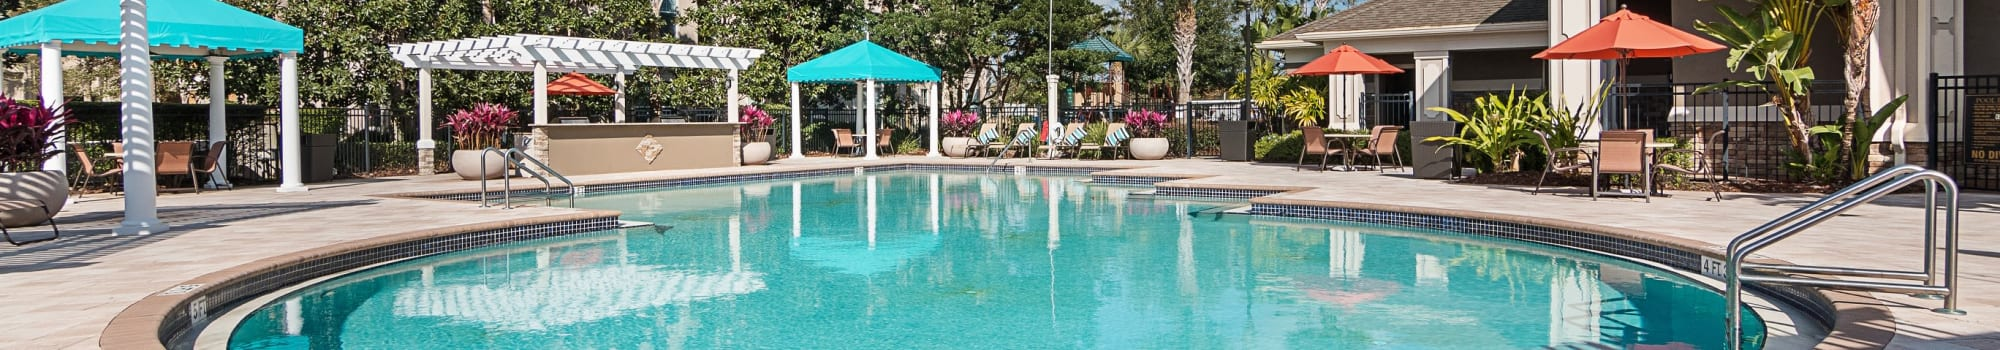 Amenities at Landings at Four Corners in Davenport, Florida